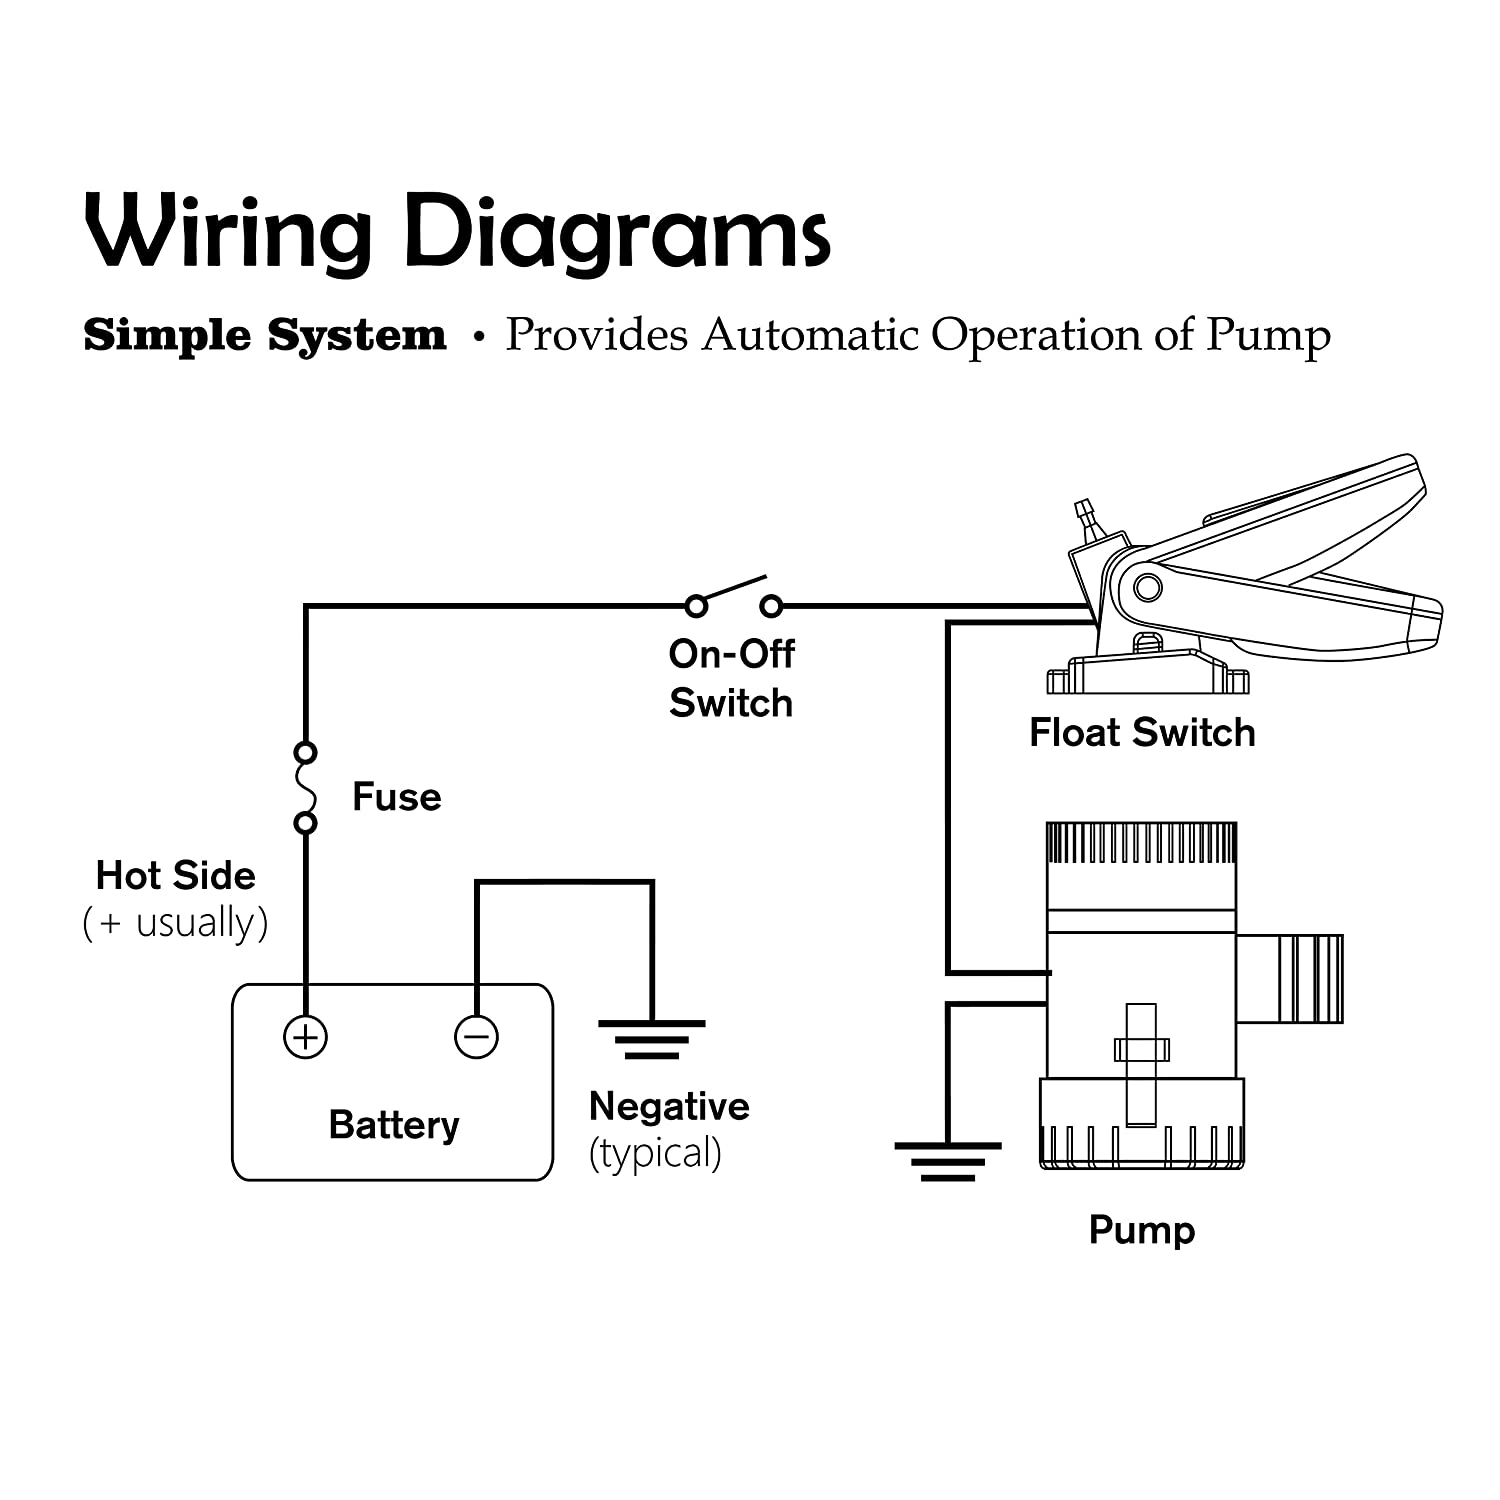 diagram of a float switch schematic 7757 rule bilge pump wiring diagram 3 wire wiring resources  rule bilge pump wiring diagram 3 wire